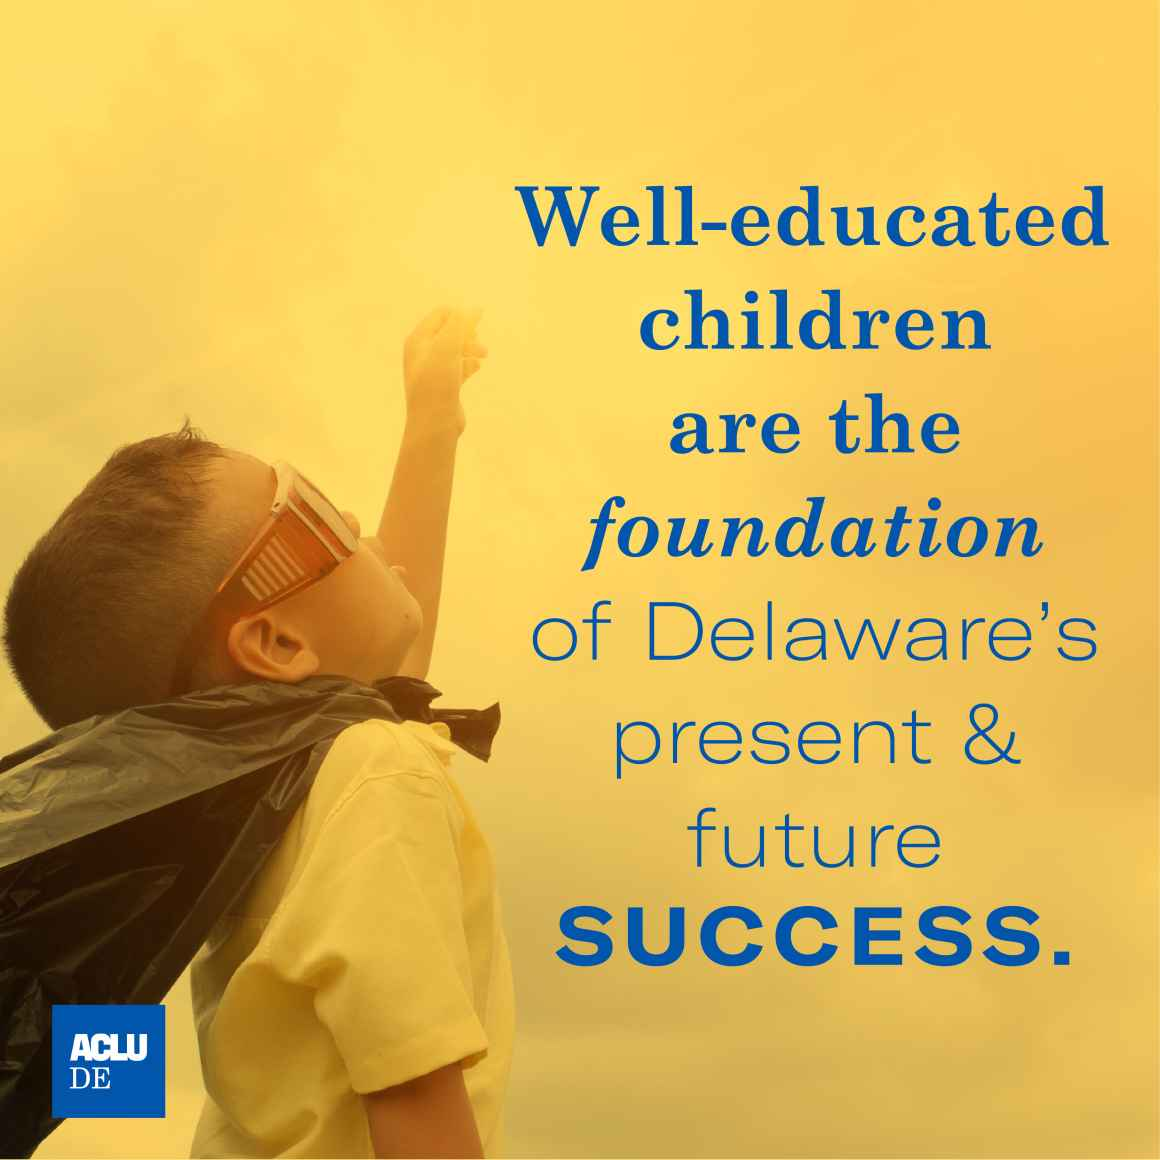 Well-educated children are the foundation of Delaware's present and future success.